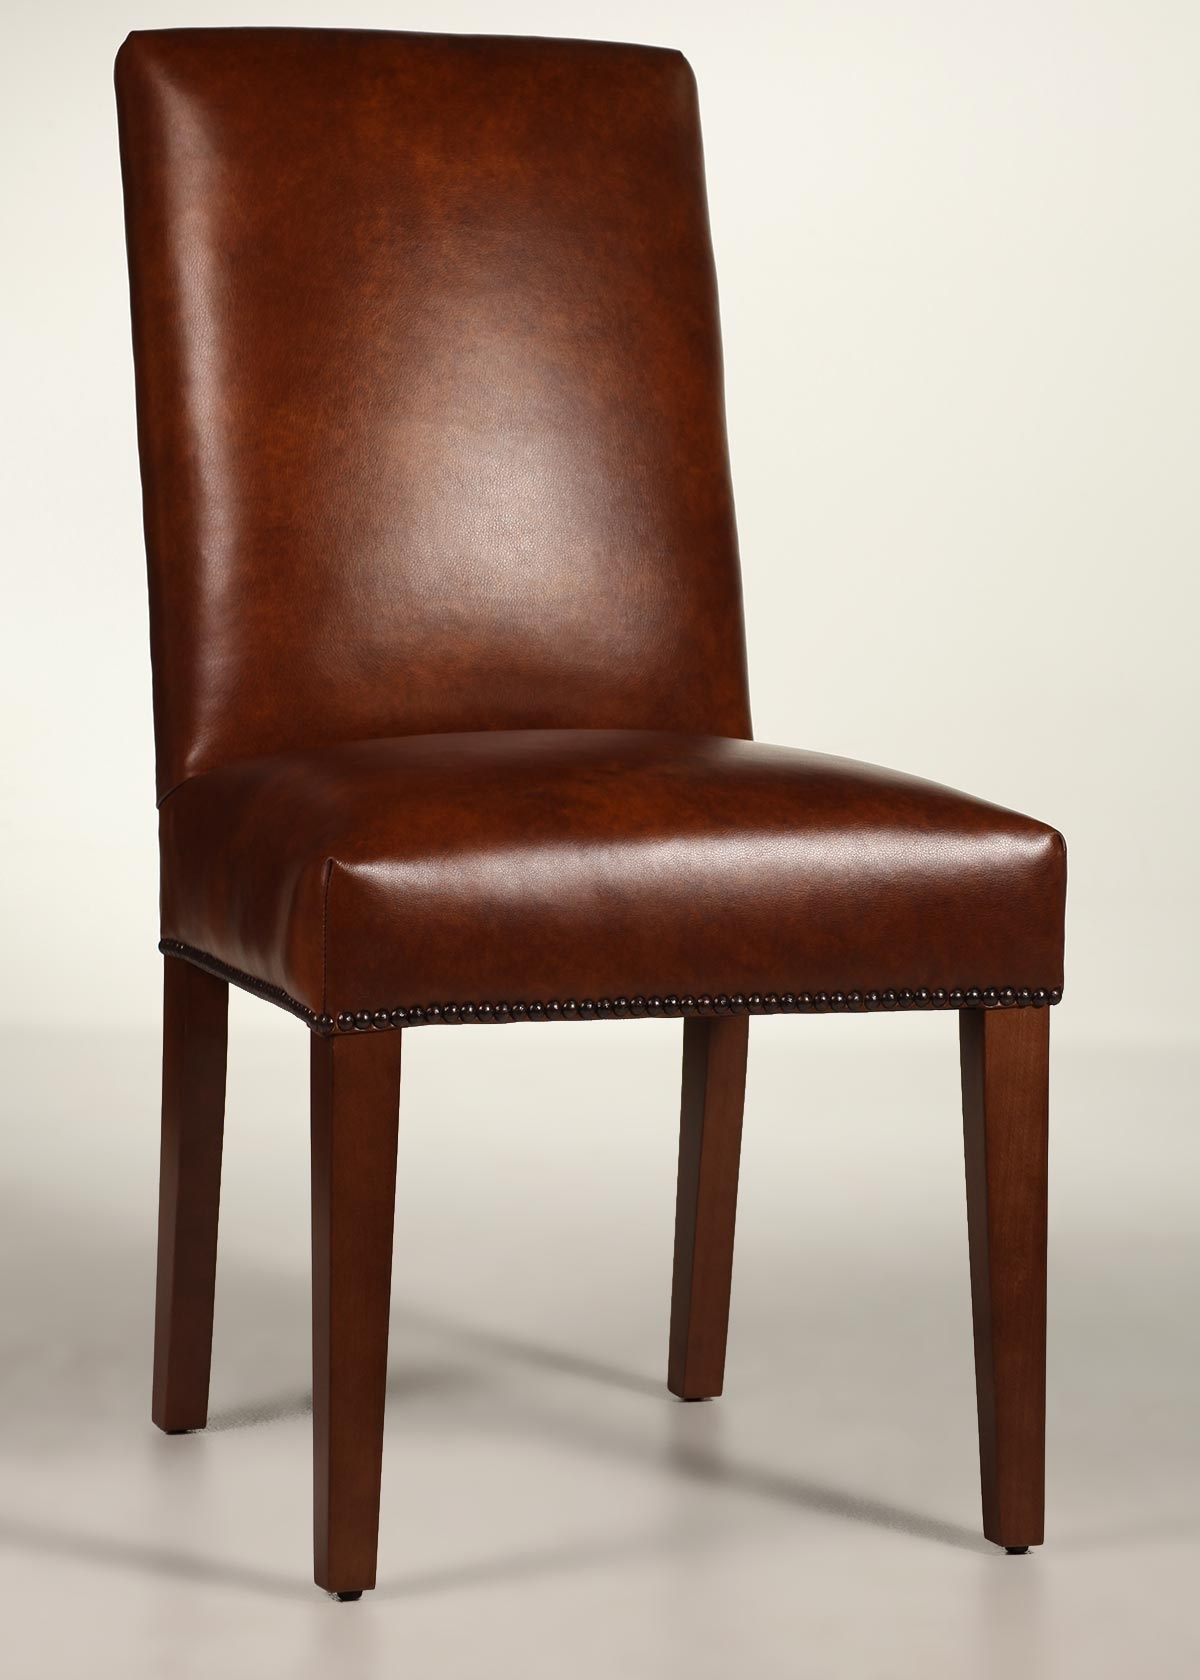 Most Popular Leather Dining Chairs Regarding Straight Back Leather Dining Chair With Tapered Legs (View 21 of 25)